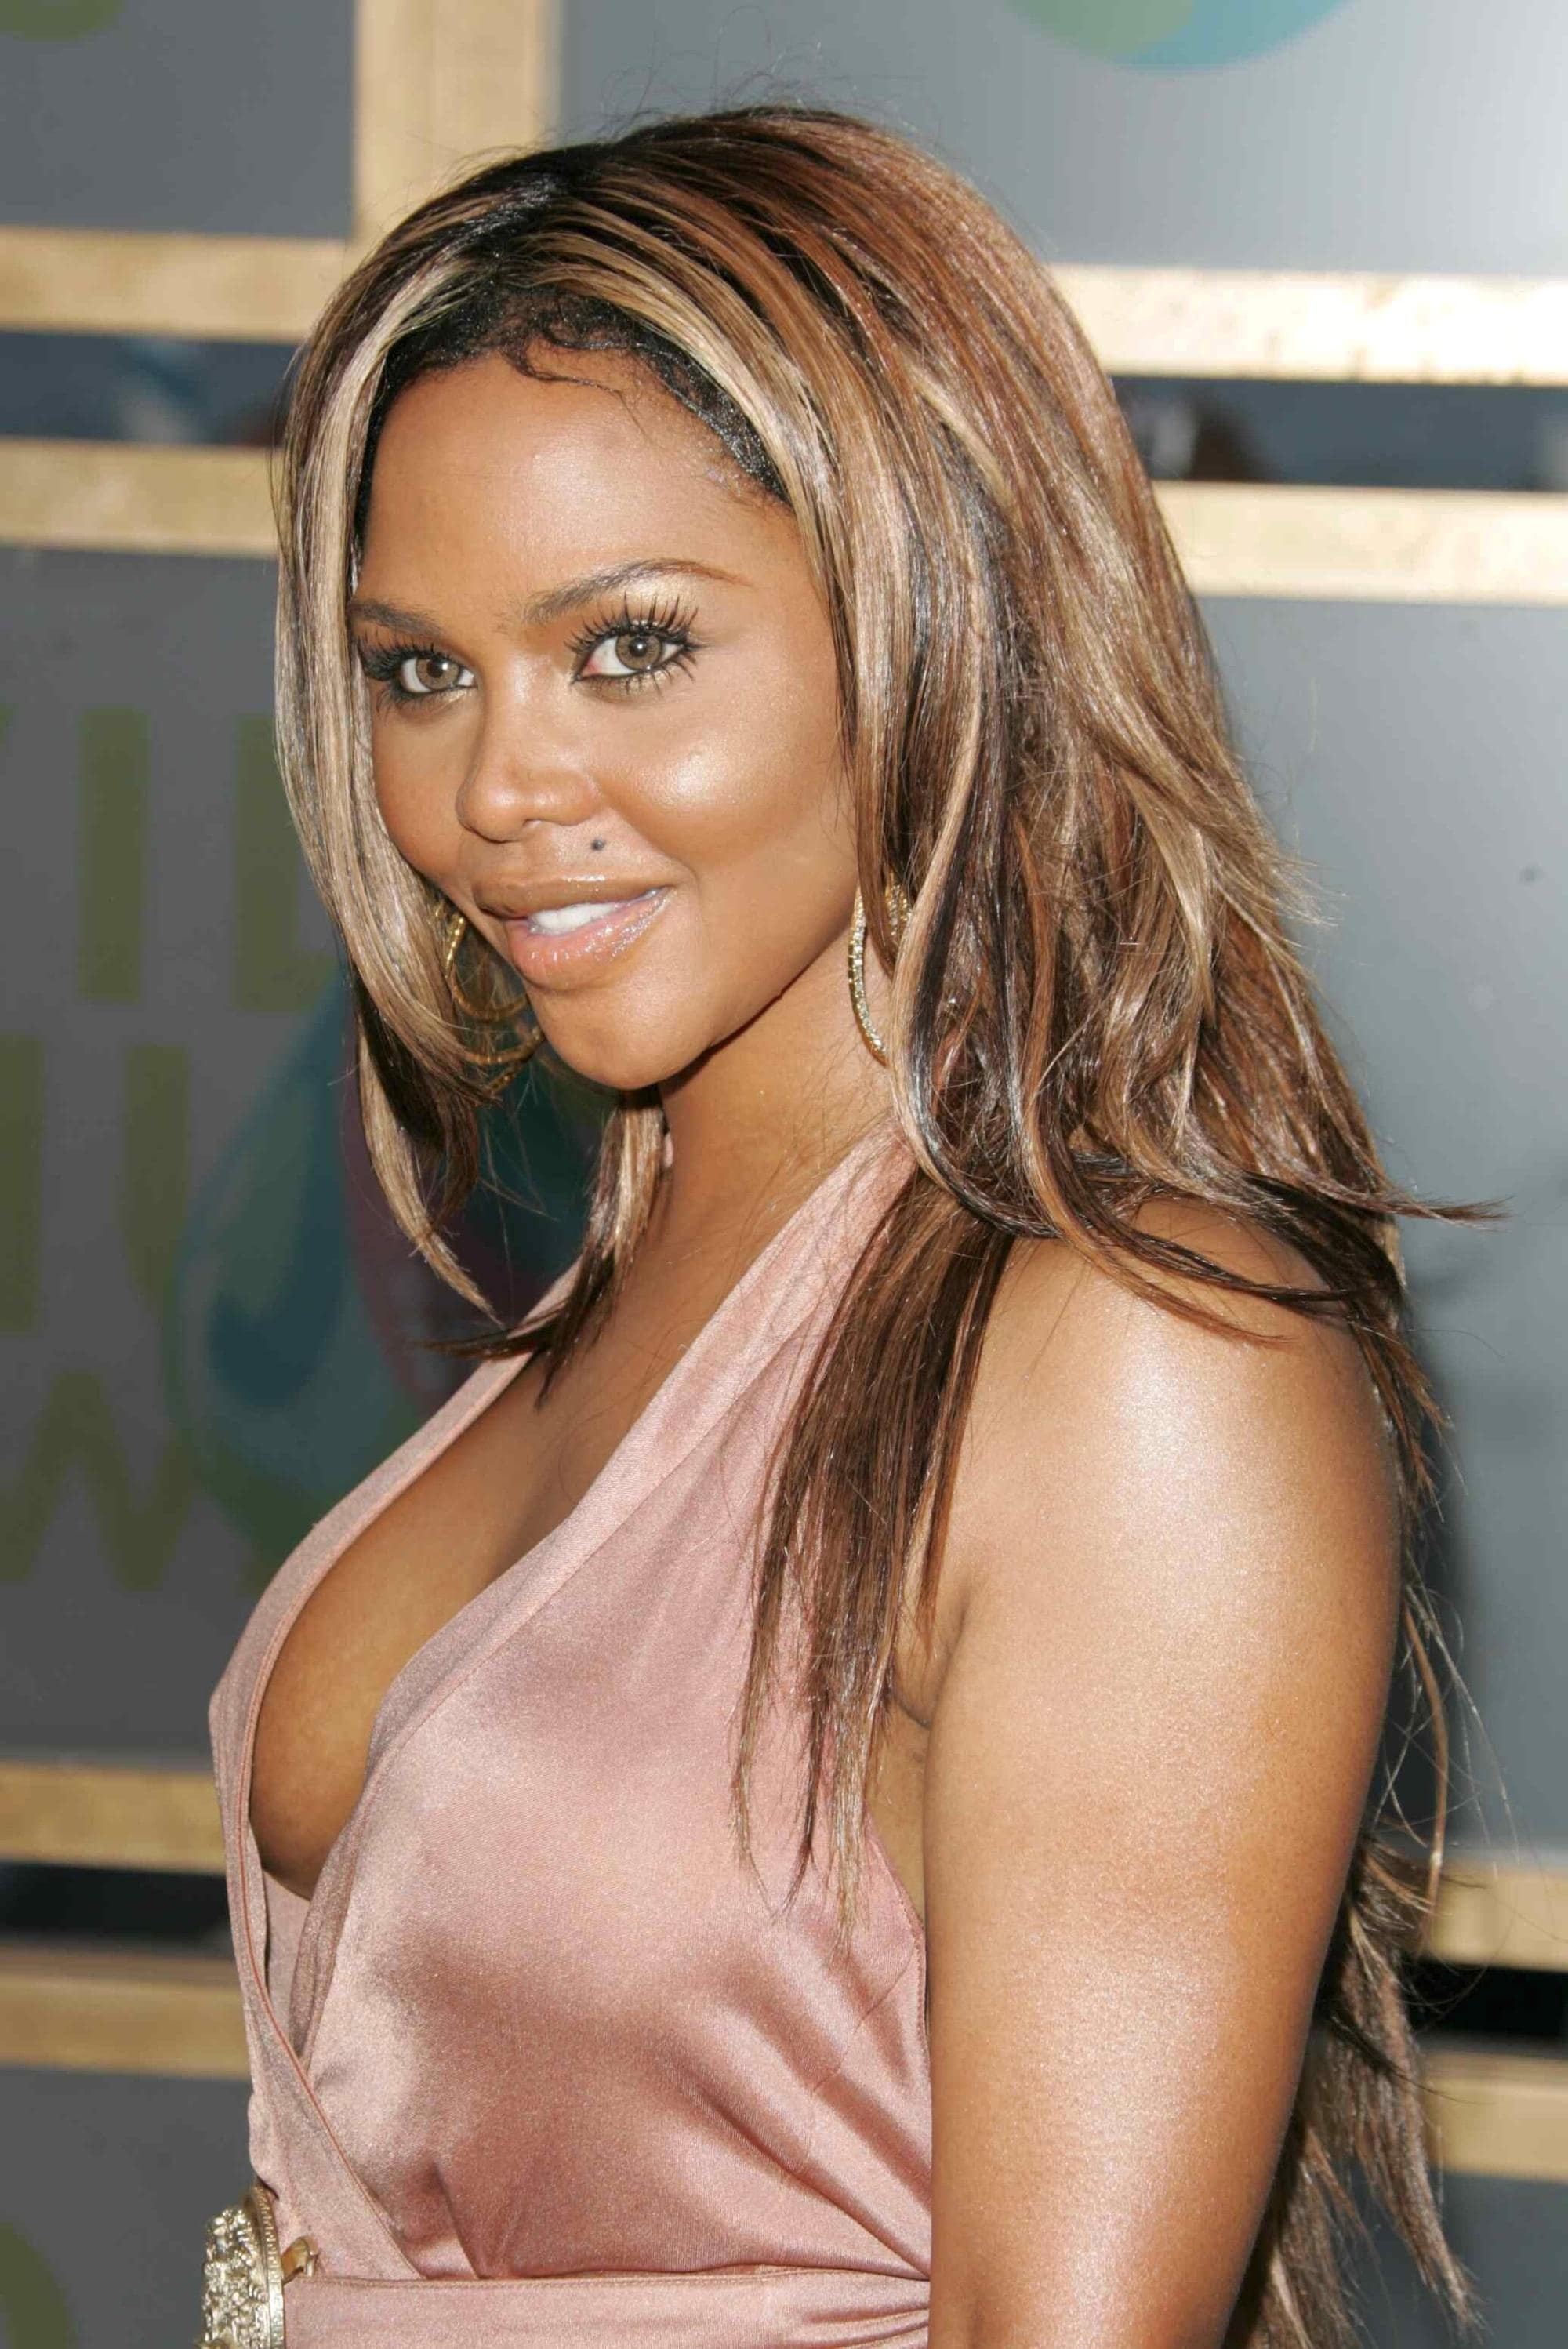 Lil Kim with straight brown chcolate hair with blonde highlights